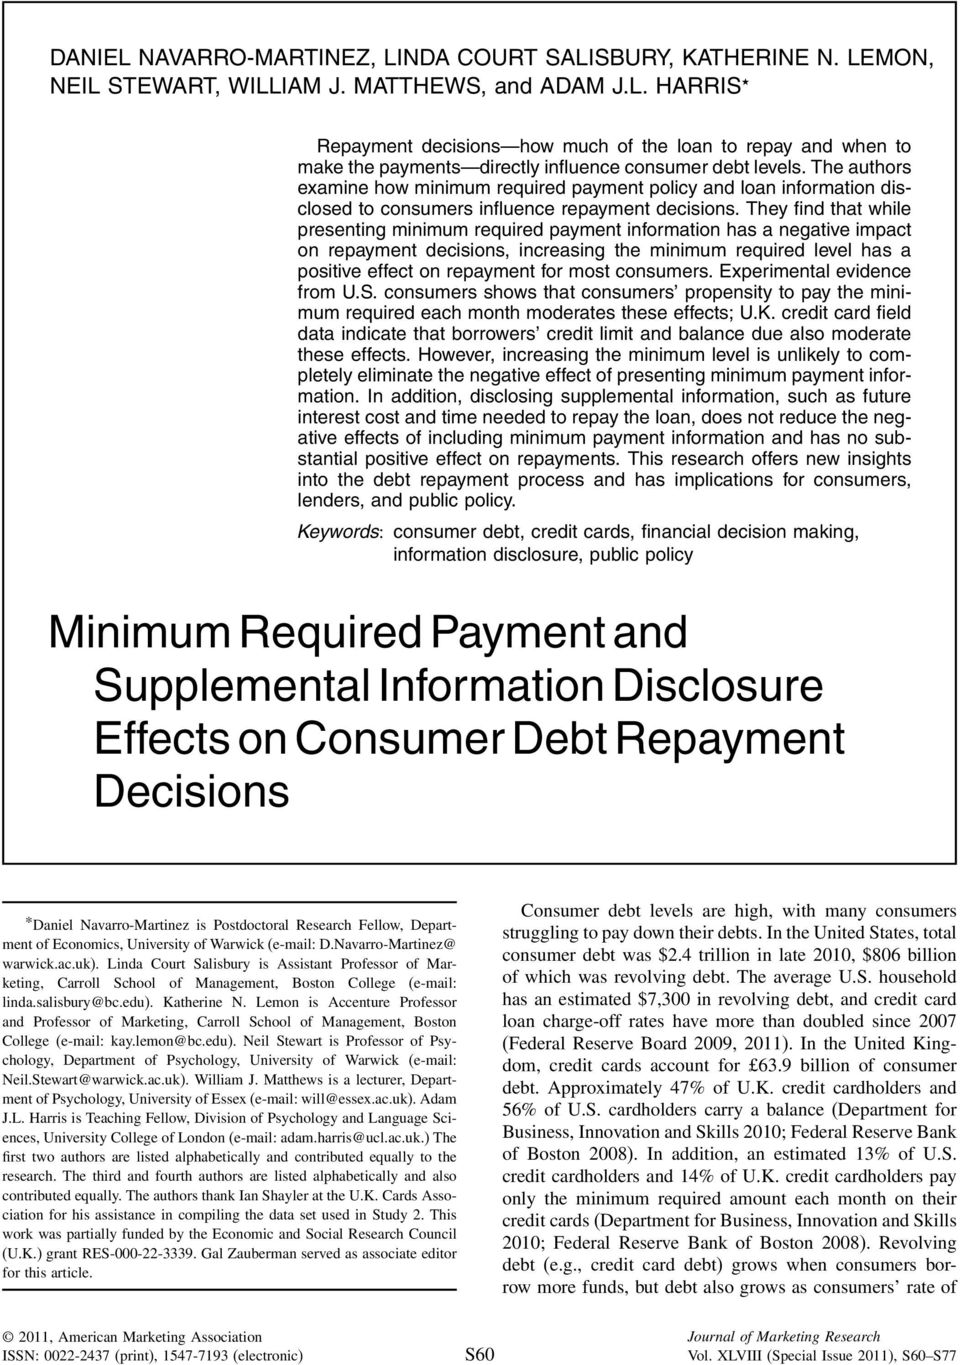 Tey find tat wie presenting minimum required payment information as a negative impact on repayment decisions, increasing te minimum required eve as a positive effect on repayment for most consumers.